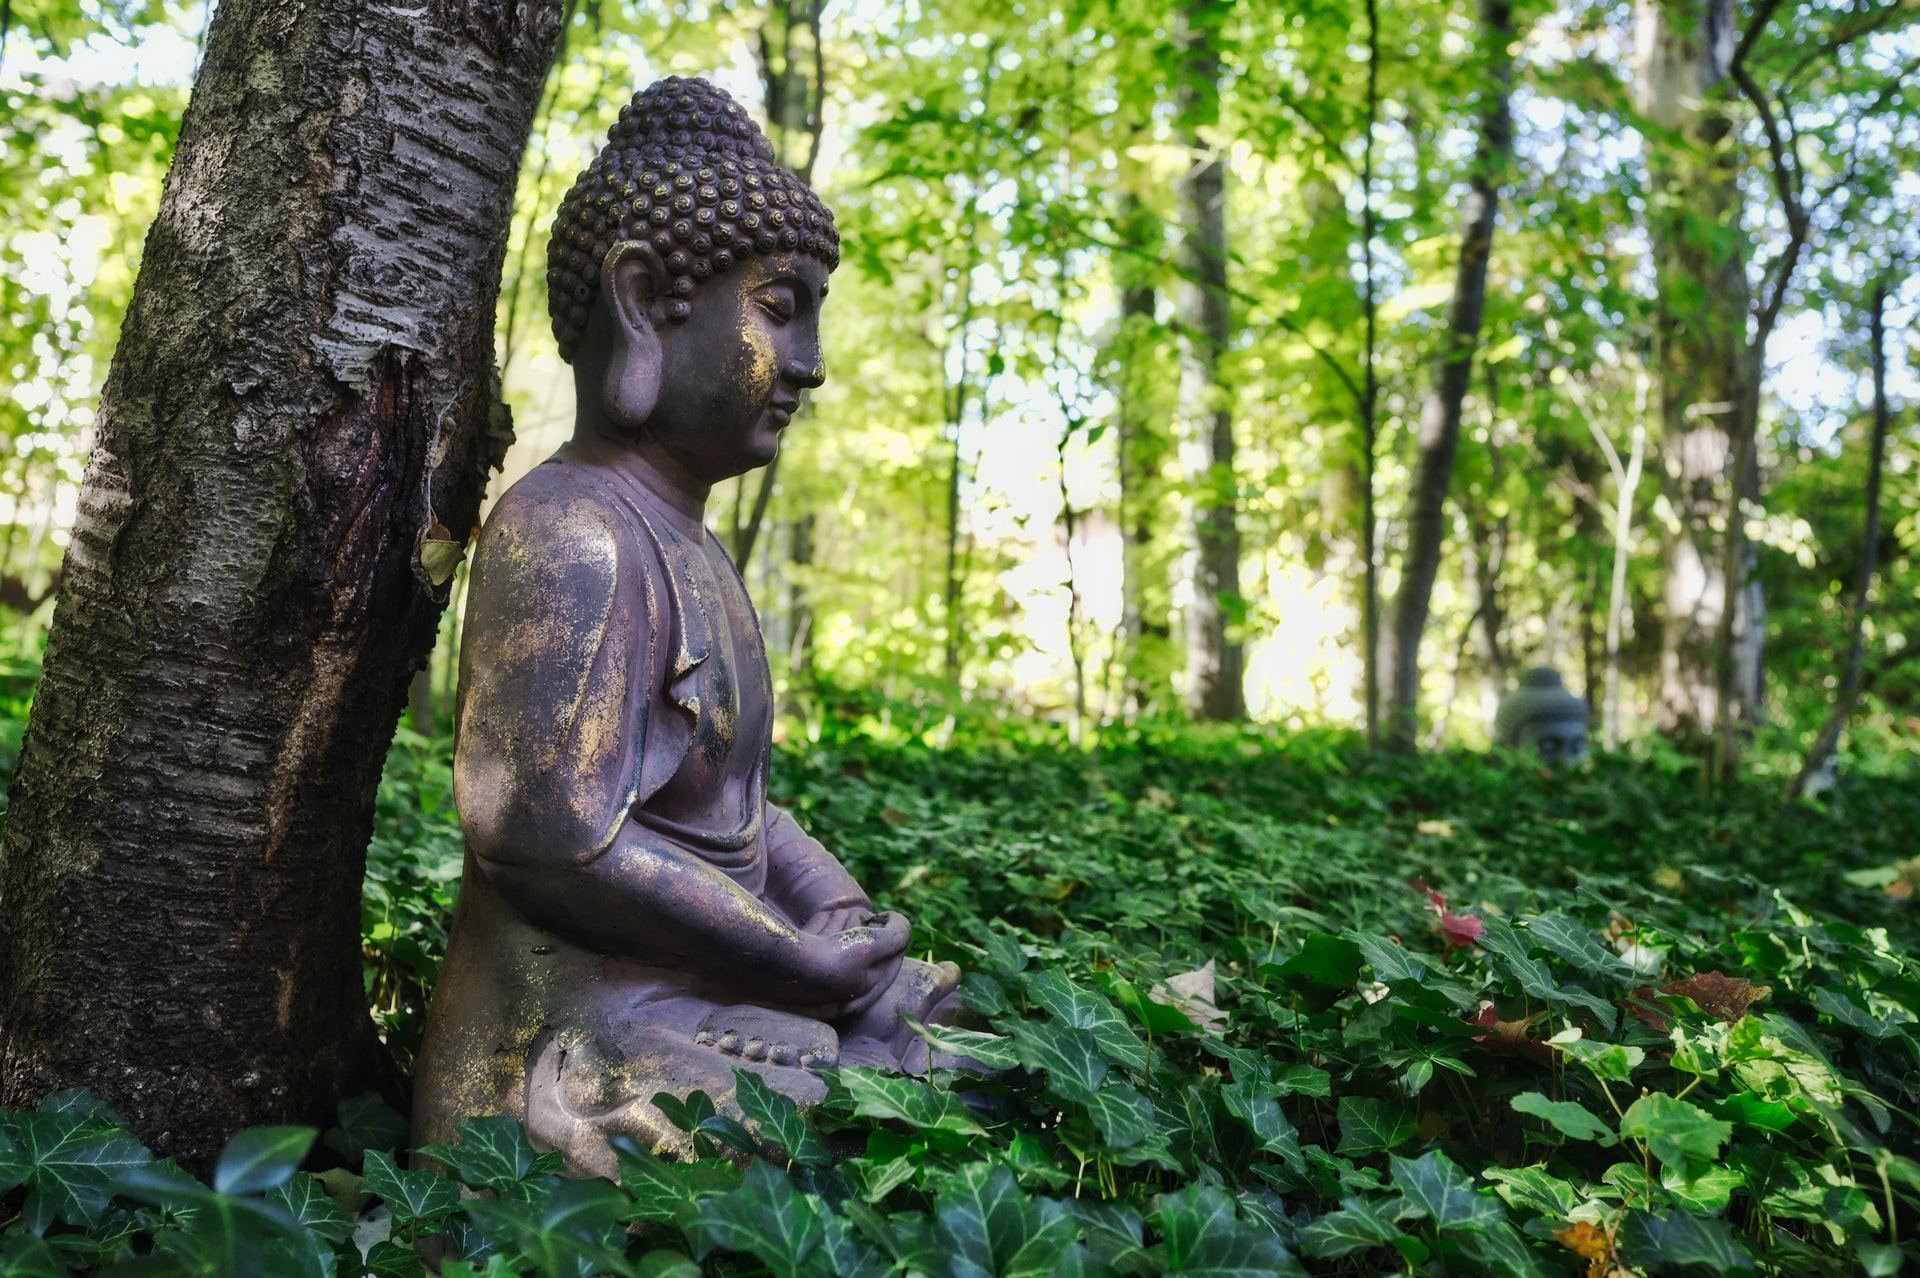 a Buddha in meditation posture sitting under a tree in a field of ivy.